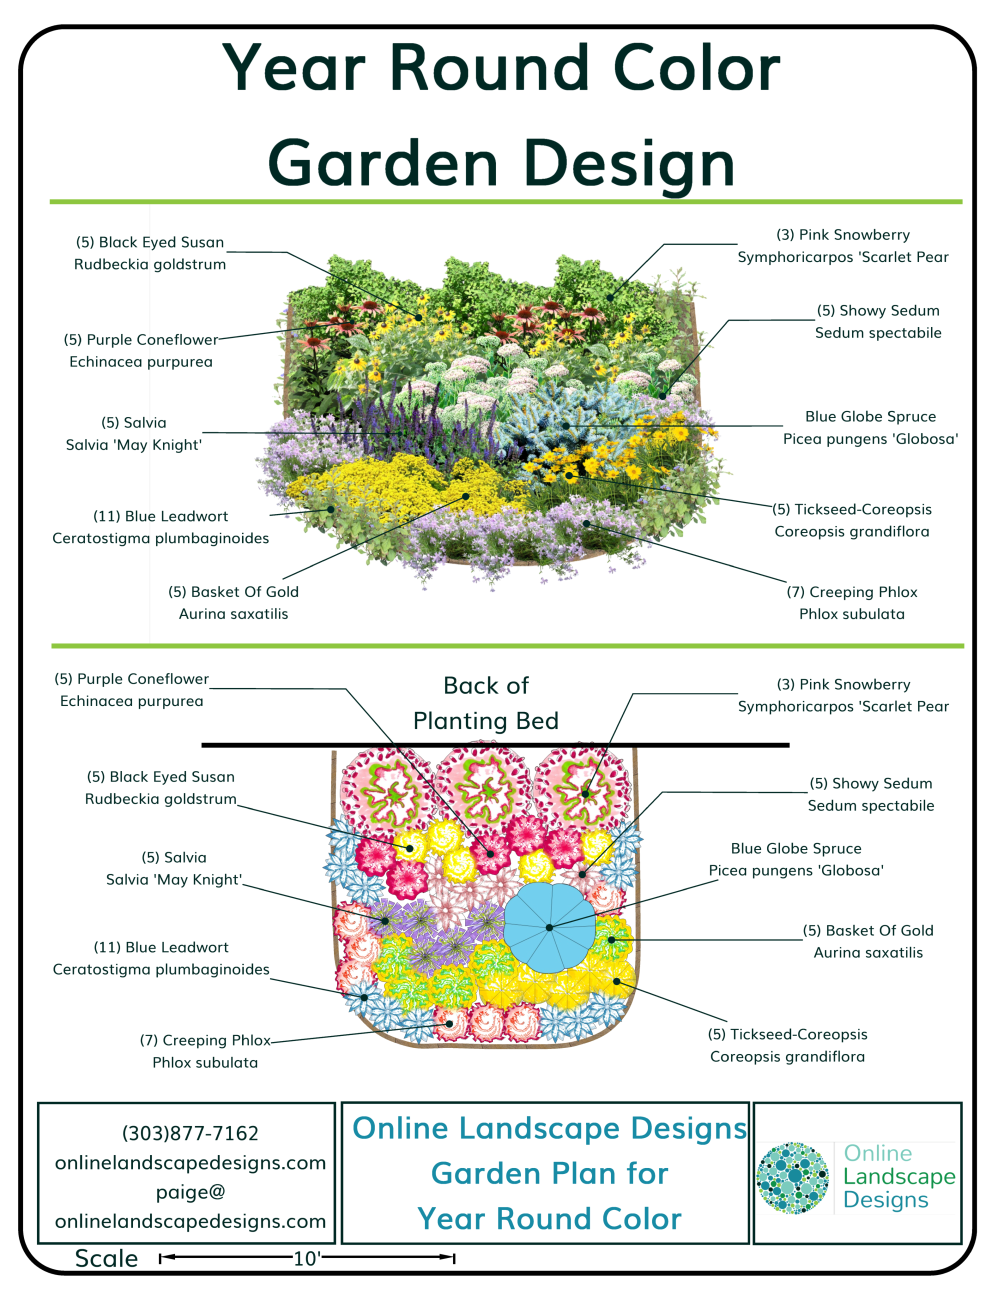 Year Round Color Garden-Garden Plan for Year Round Color